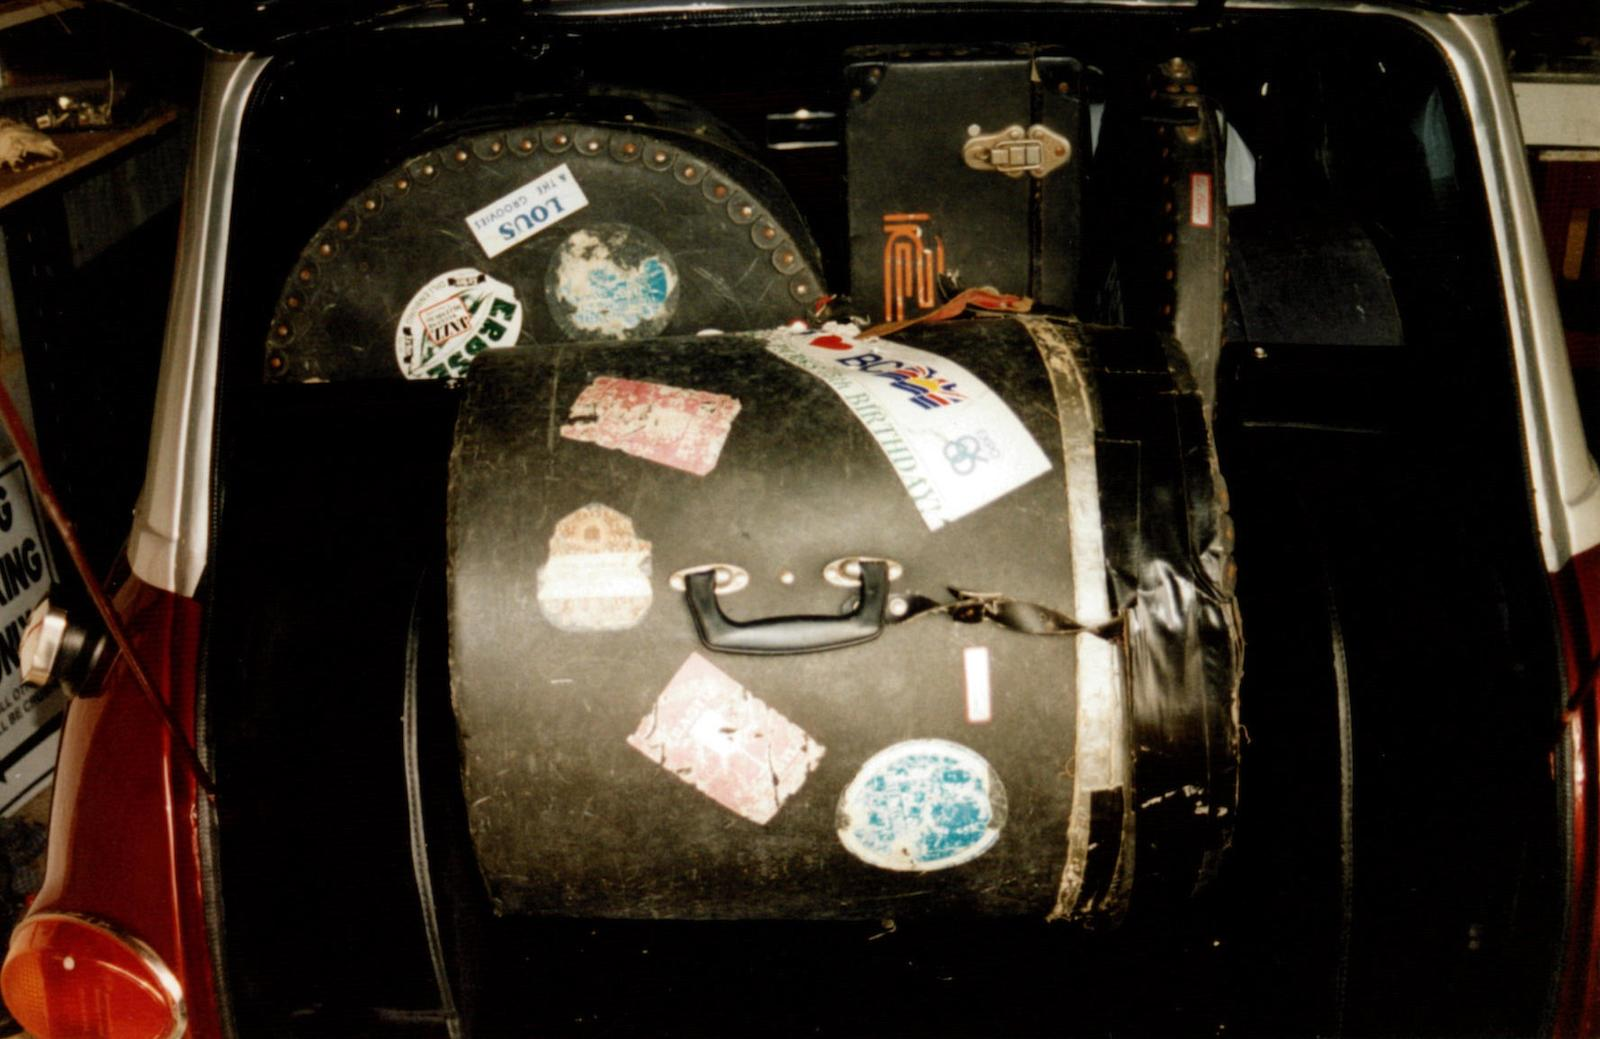 Ringo Starr's 1966 Austin Mini Cooper S fits a drum kit in the trunk